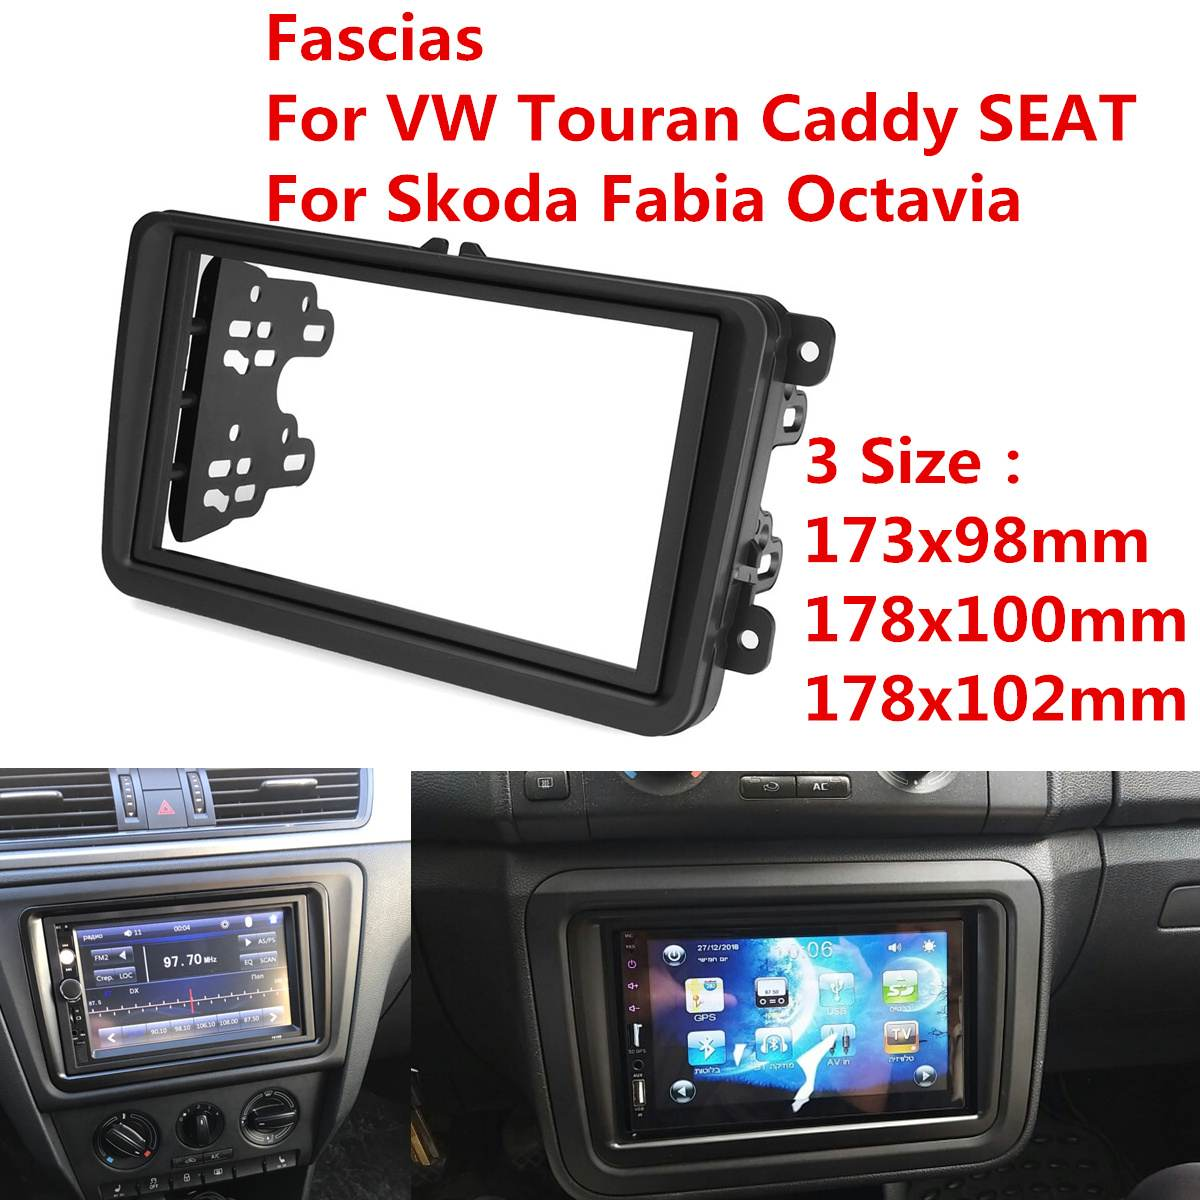 2 Din Car Radio Fascia Fascias Panel Frame CD DVD Dash Audio Interior for Volkswagen VW Touran Caddy SEAT <font><b>Skoda</b></font> <font><b>Fabia</b></font> Octavia image